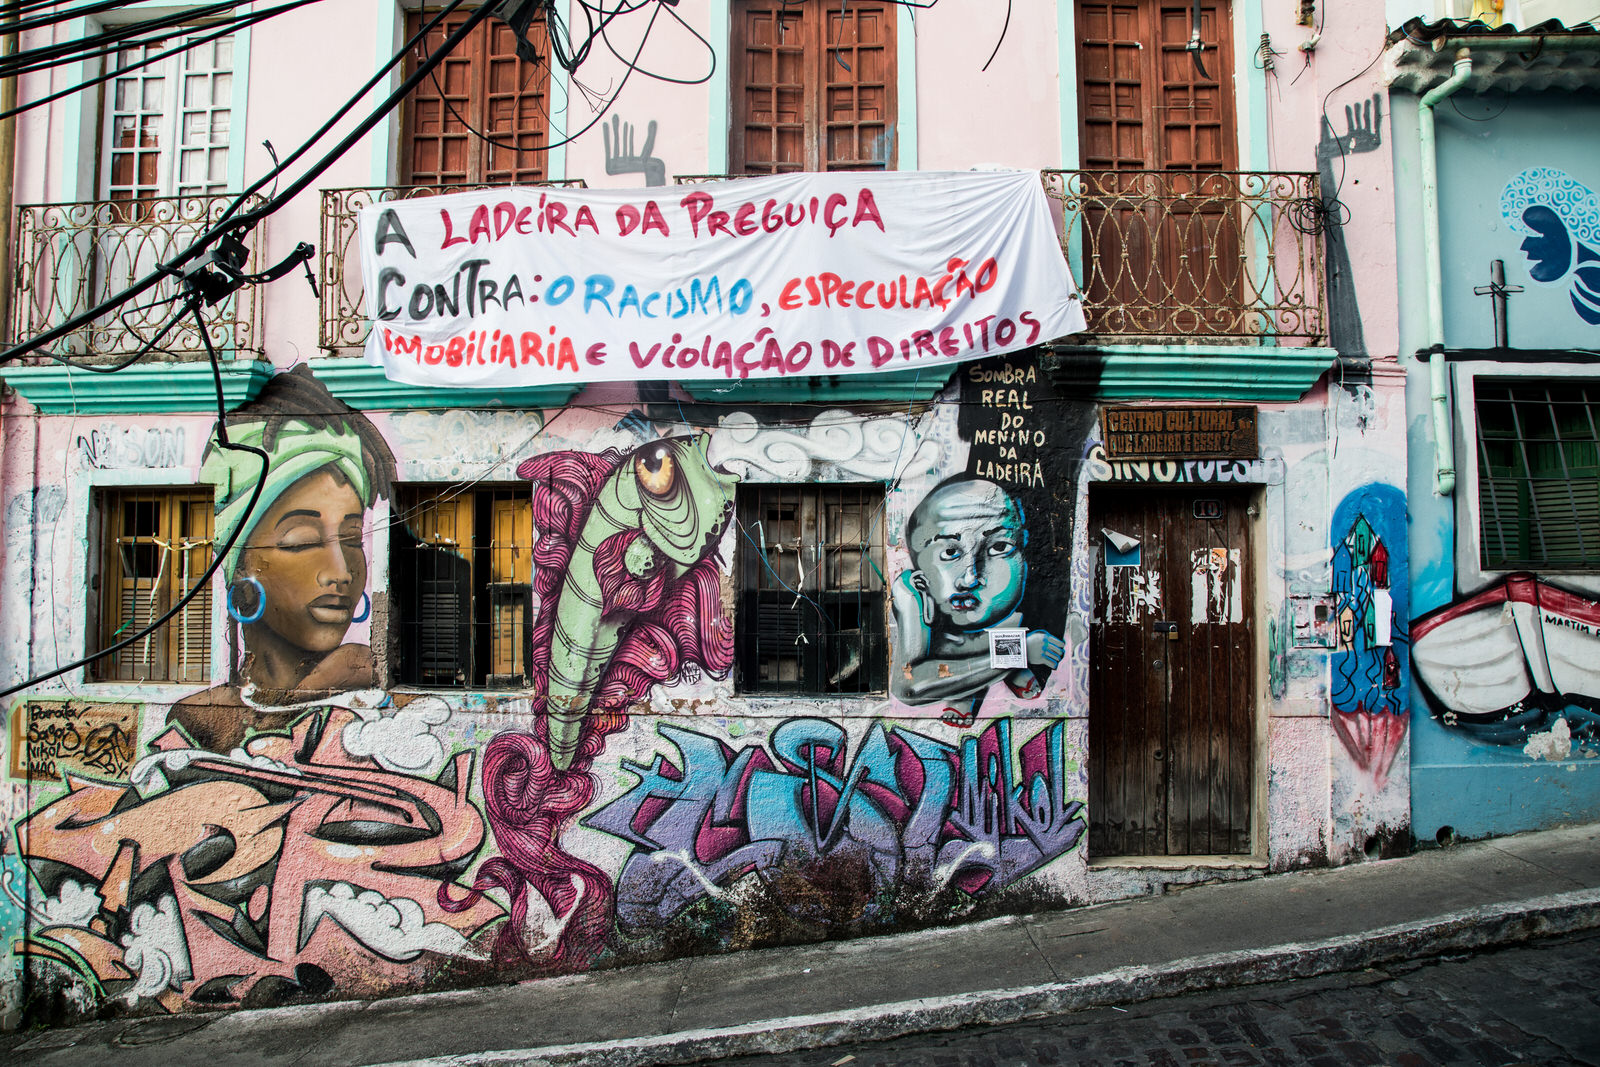 Close to the  cidade baixa  is the commmunity of  Ladeira da Preguiça  which is made up of narrow streets and vacant warehouses, and has over time lent itself to organised crime and, most recently, to drug-trafficking.